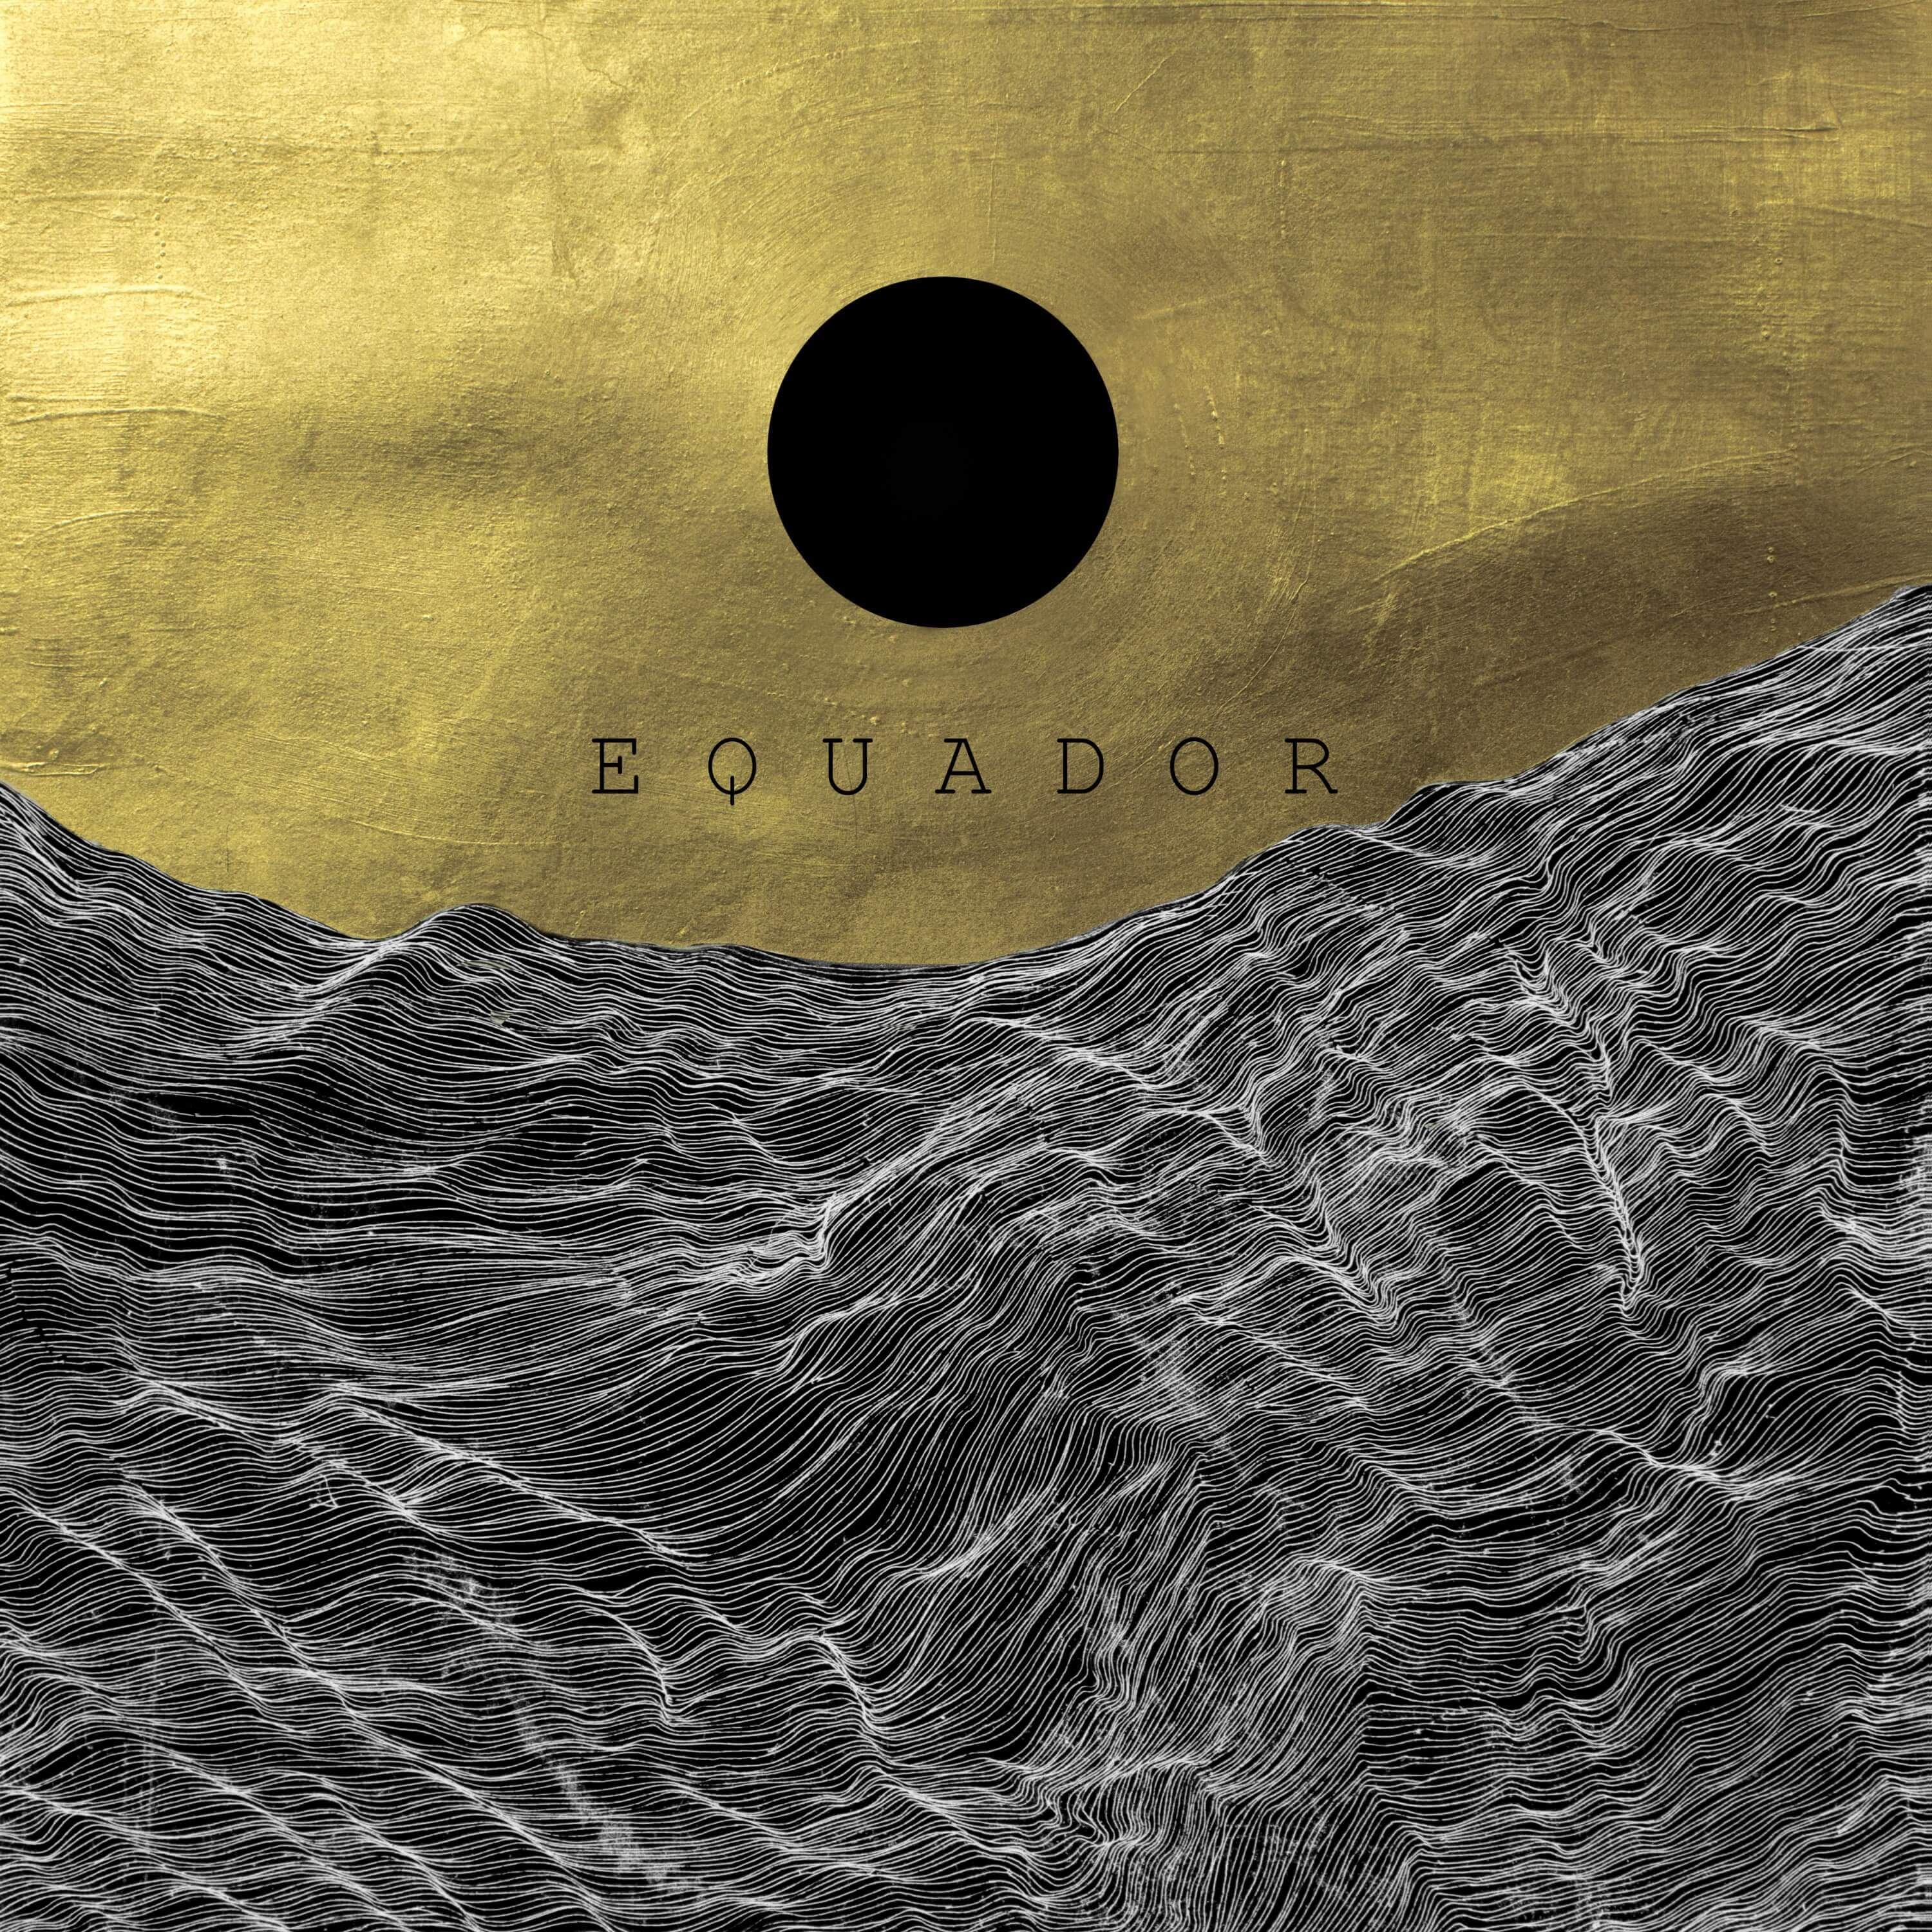 Cover for new equador music release